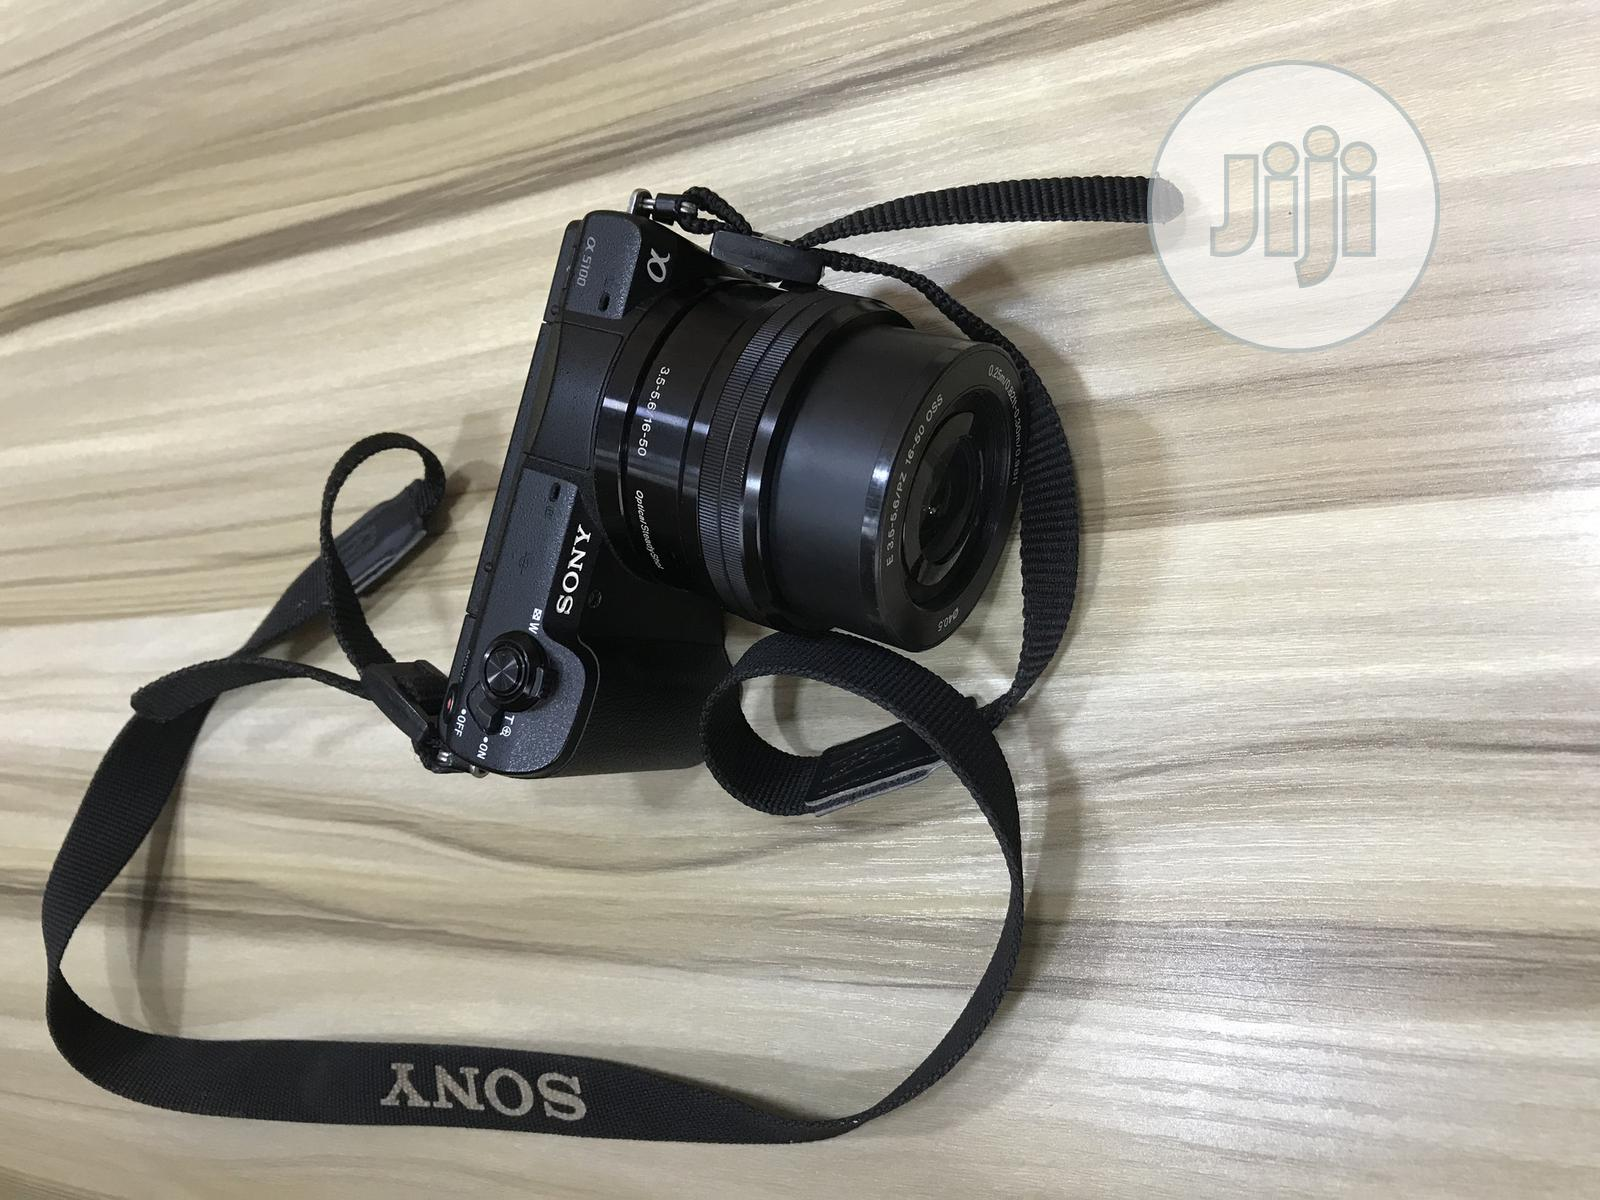 Archive: Sony Photo and Video Camera A5100